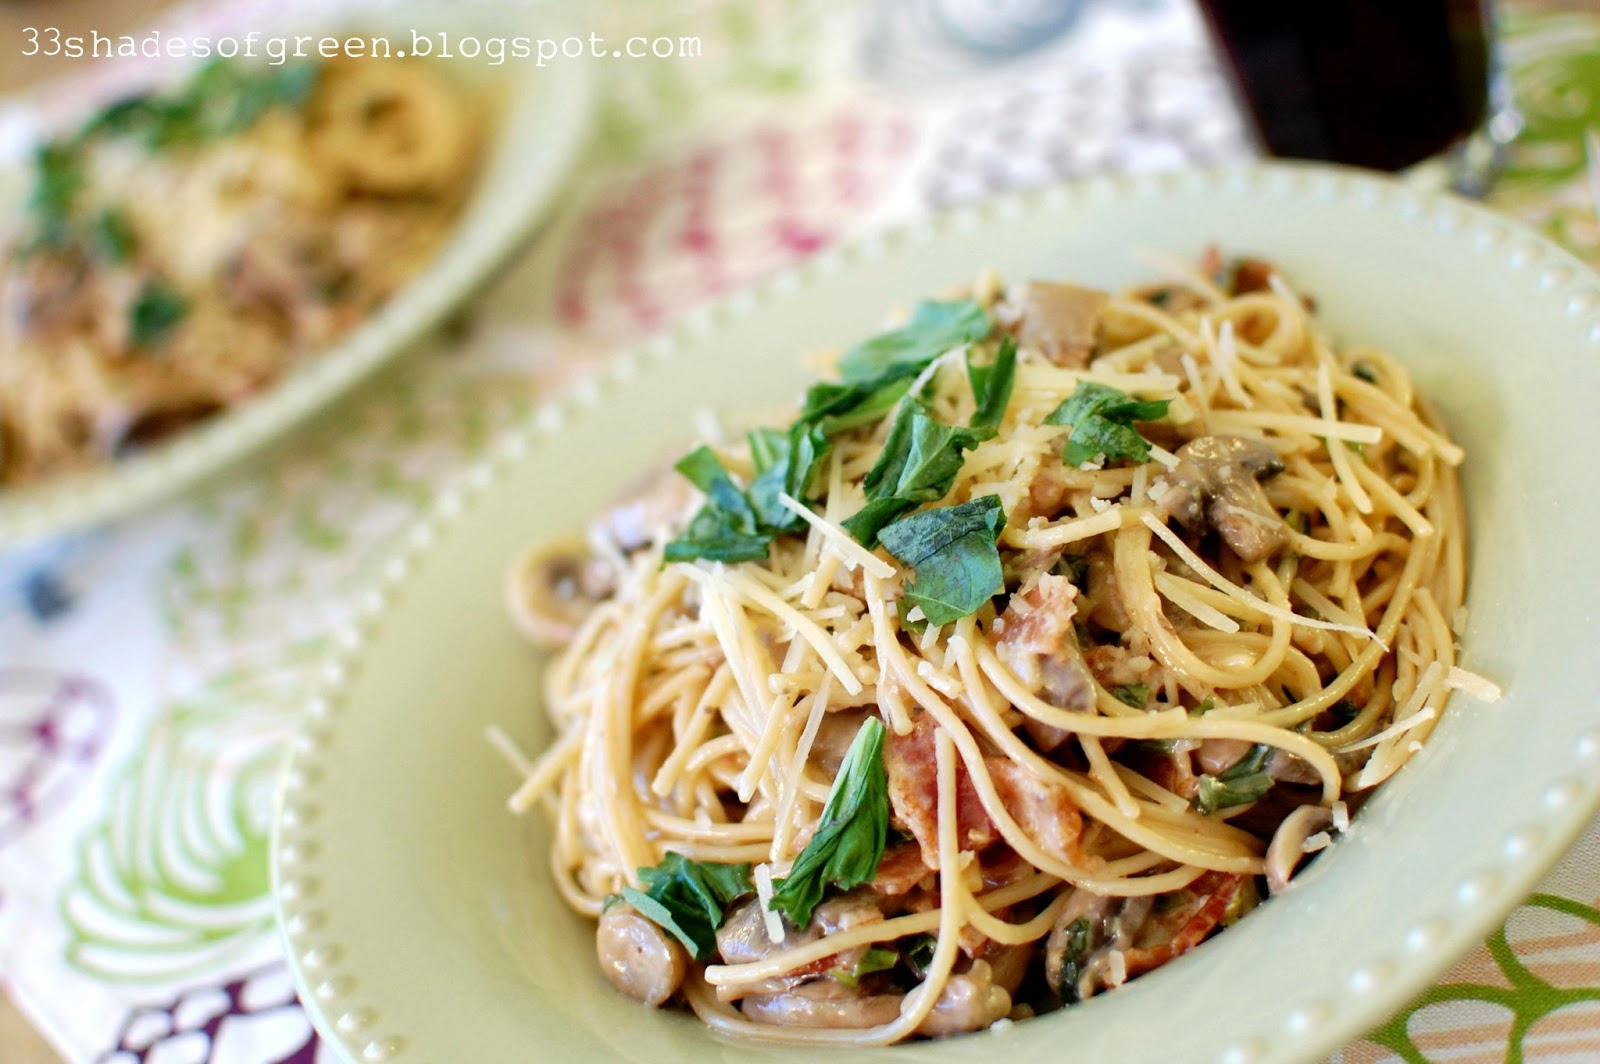 Add pasta to the mixture and stir until coated with sauce. Top with ...